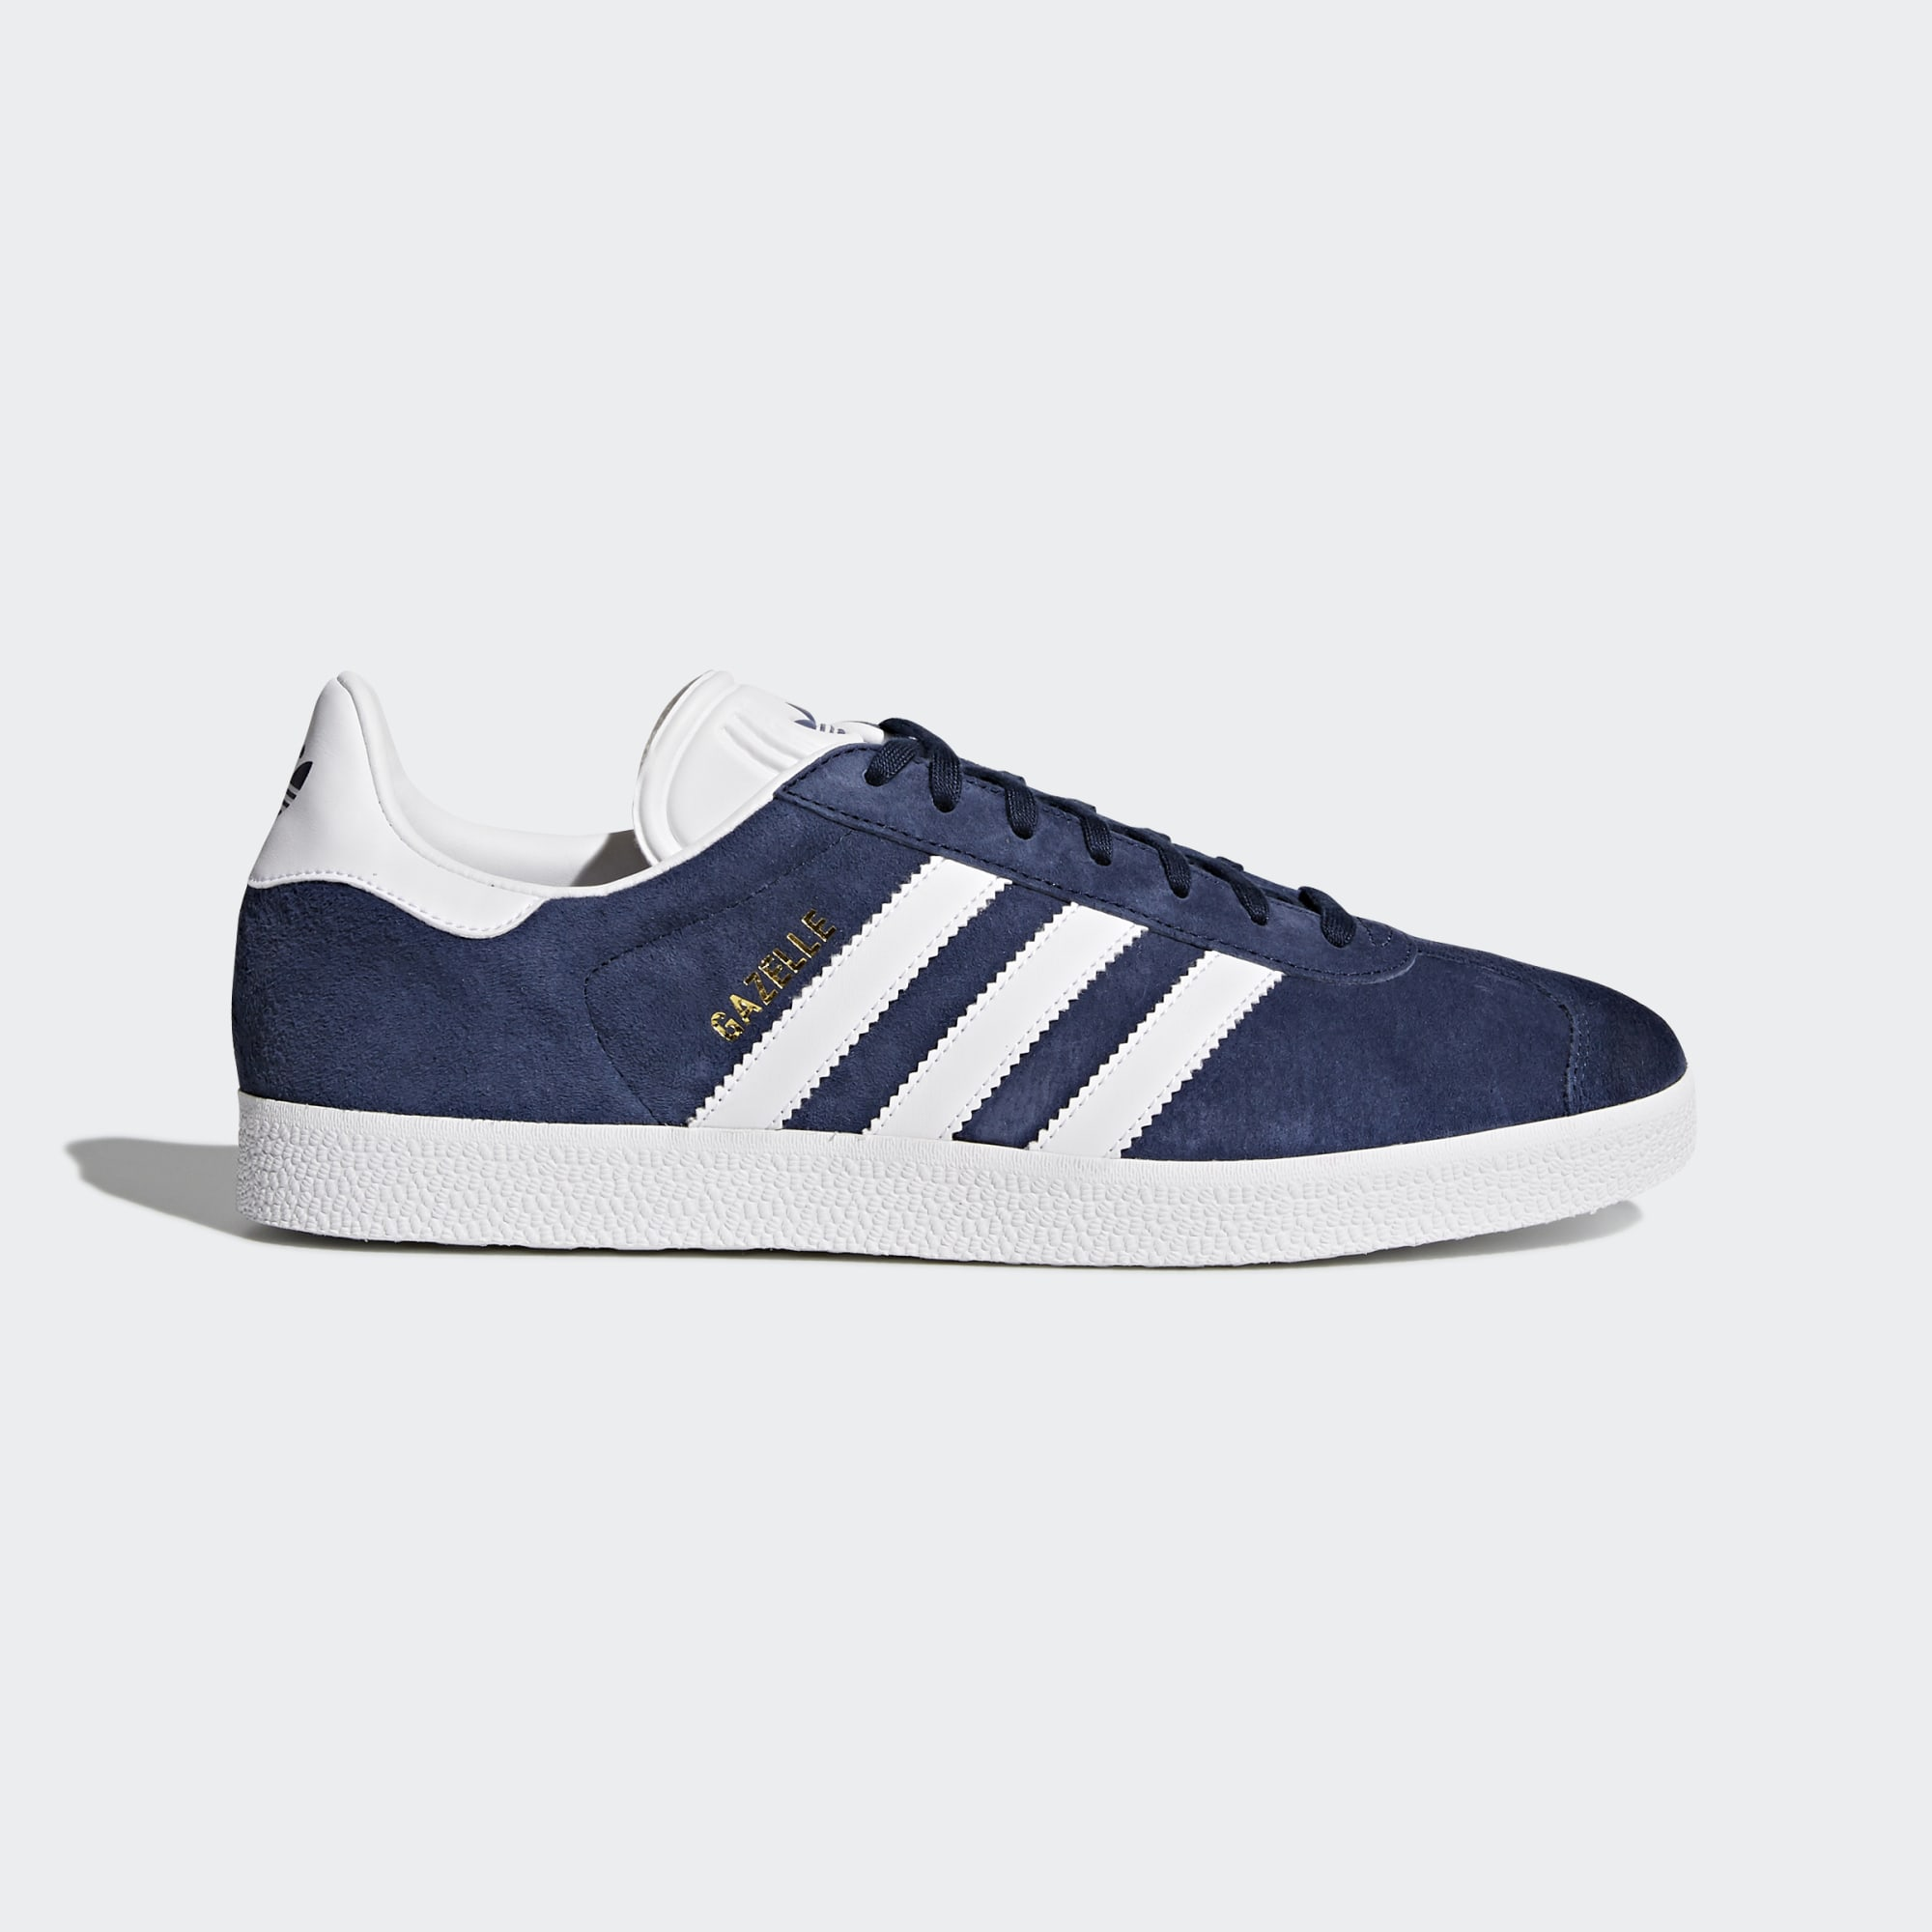 Suede_Shoes_10_-_Adidas